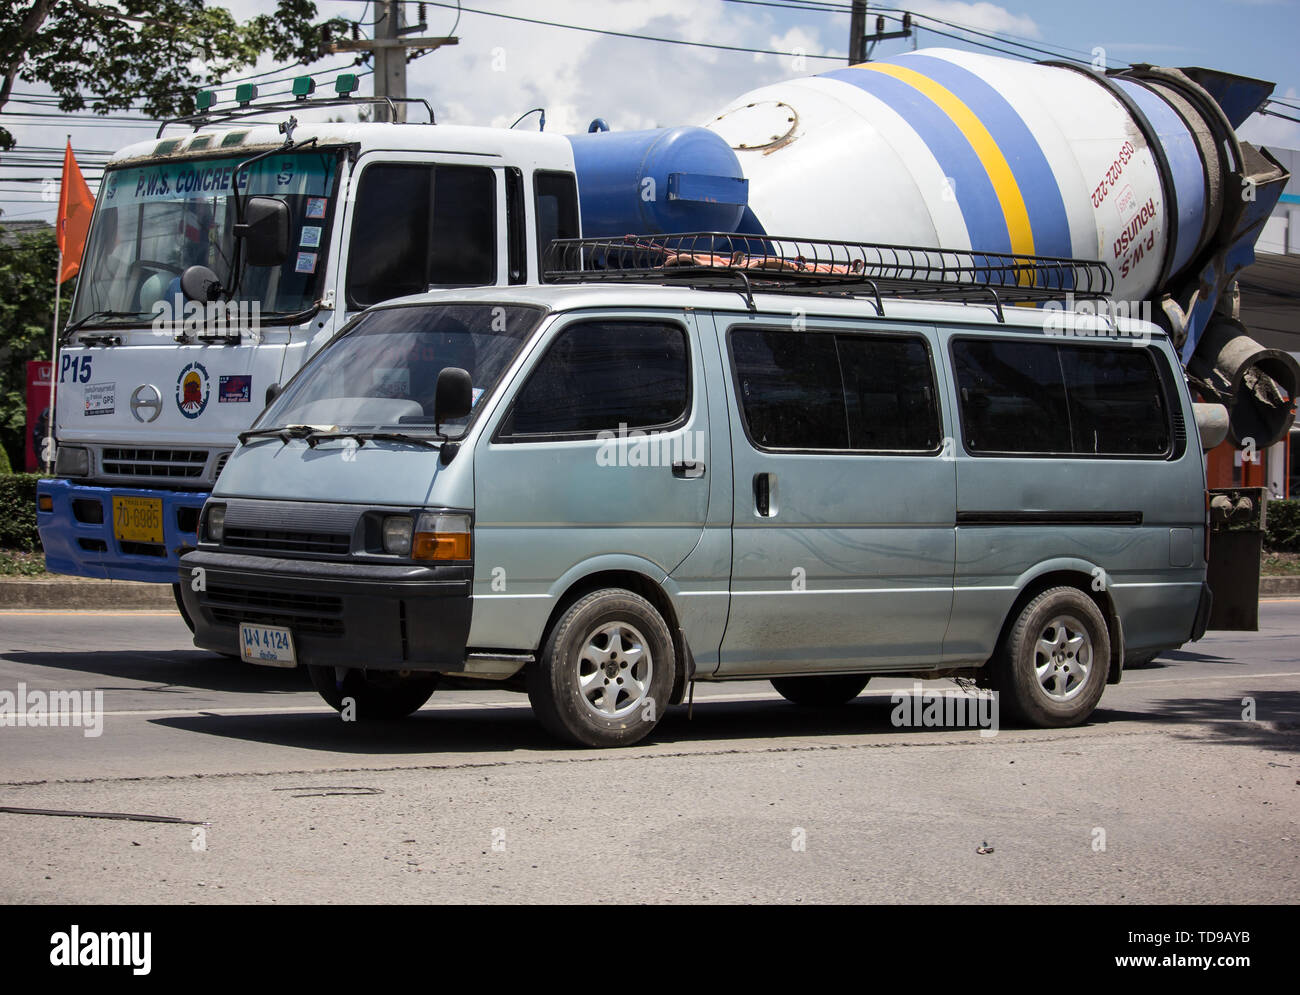 Toyota Hiace Stock Photos & Toyota Hiace Stock Images - Alamy